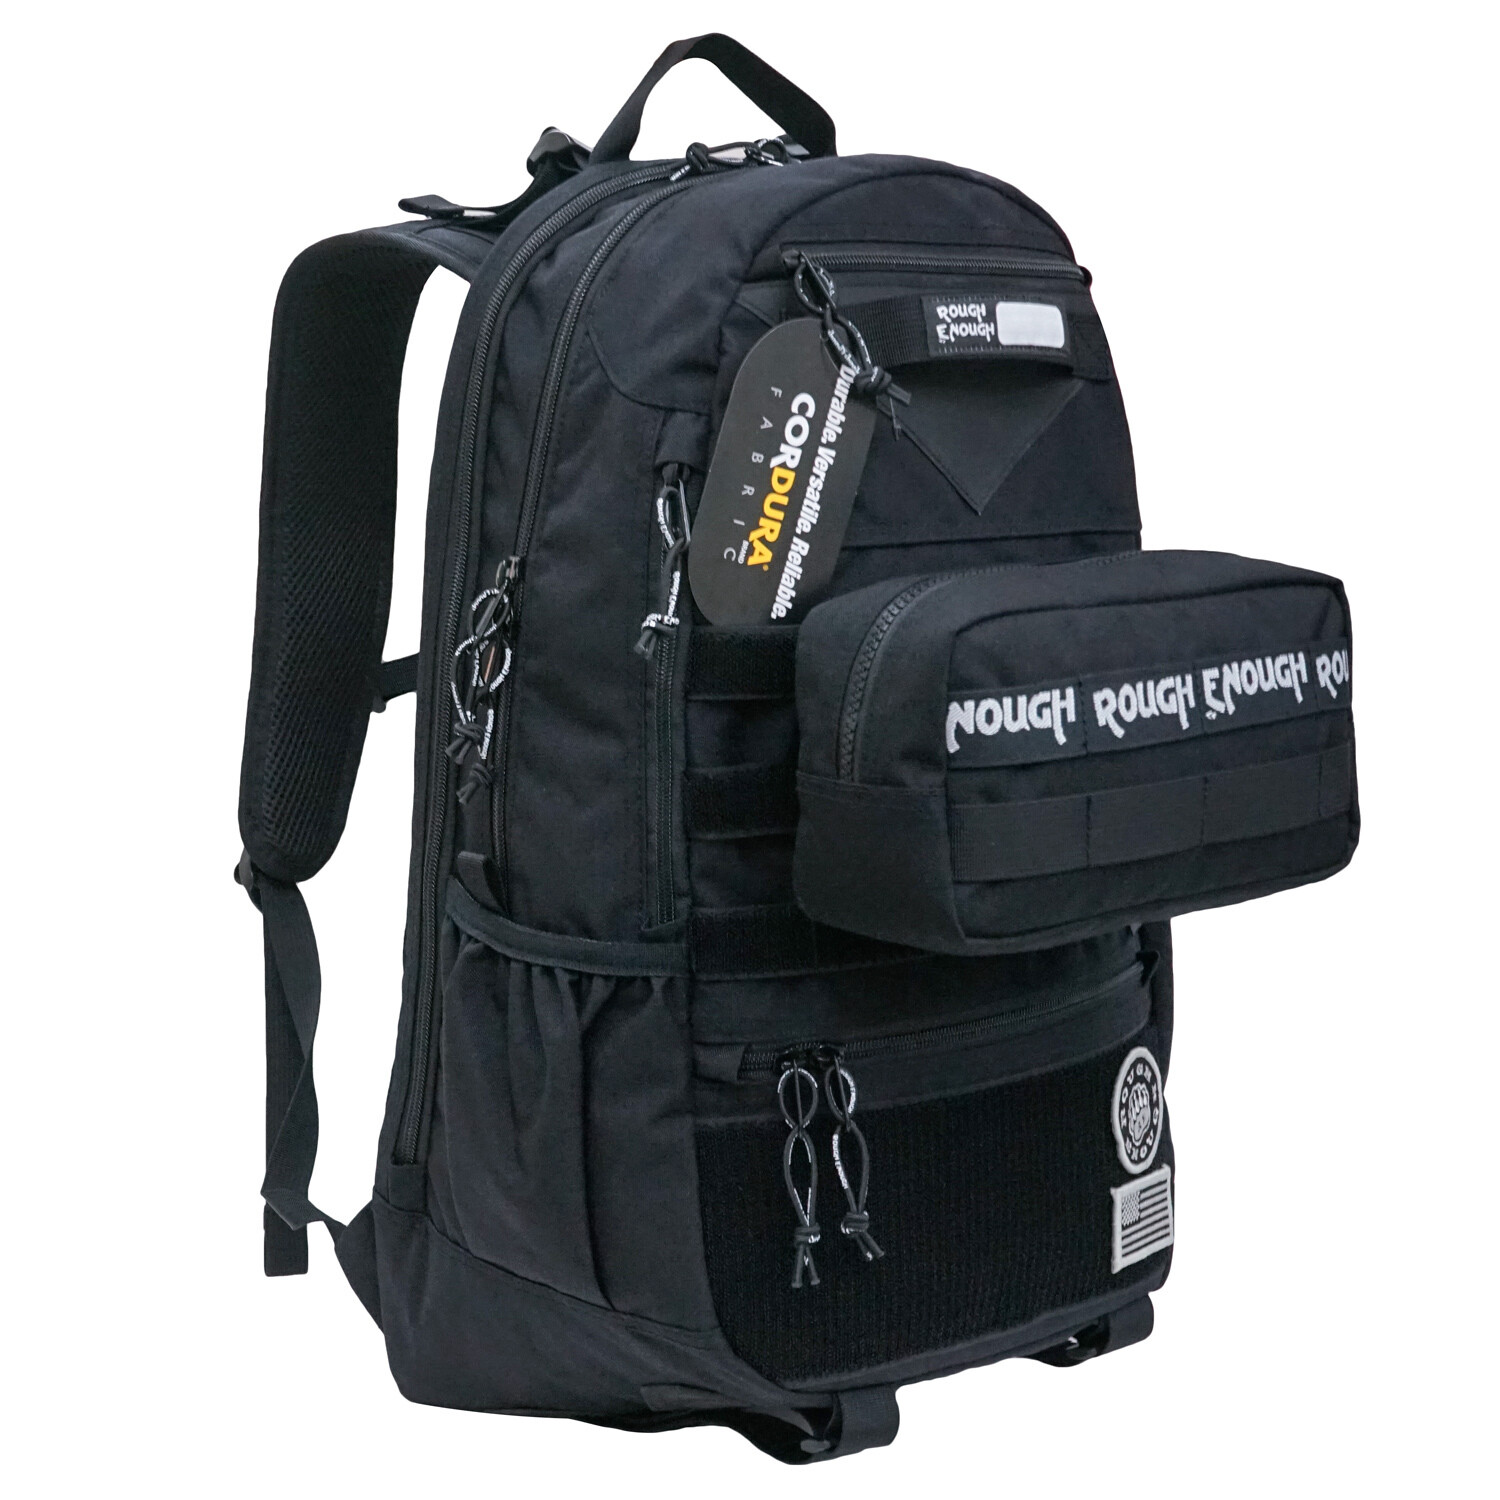 RE8661 Black 20L Tactical Military Molle Backpack Laptop Travel Rucksack